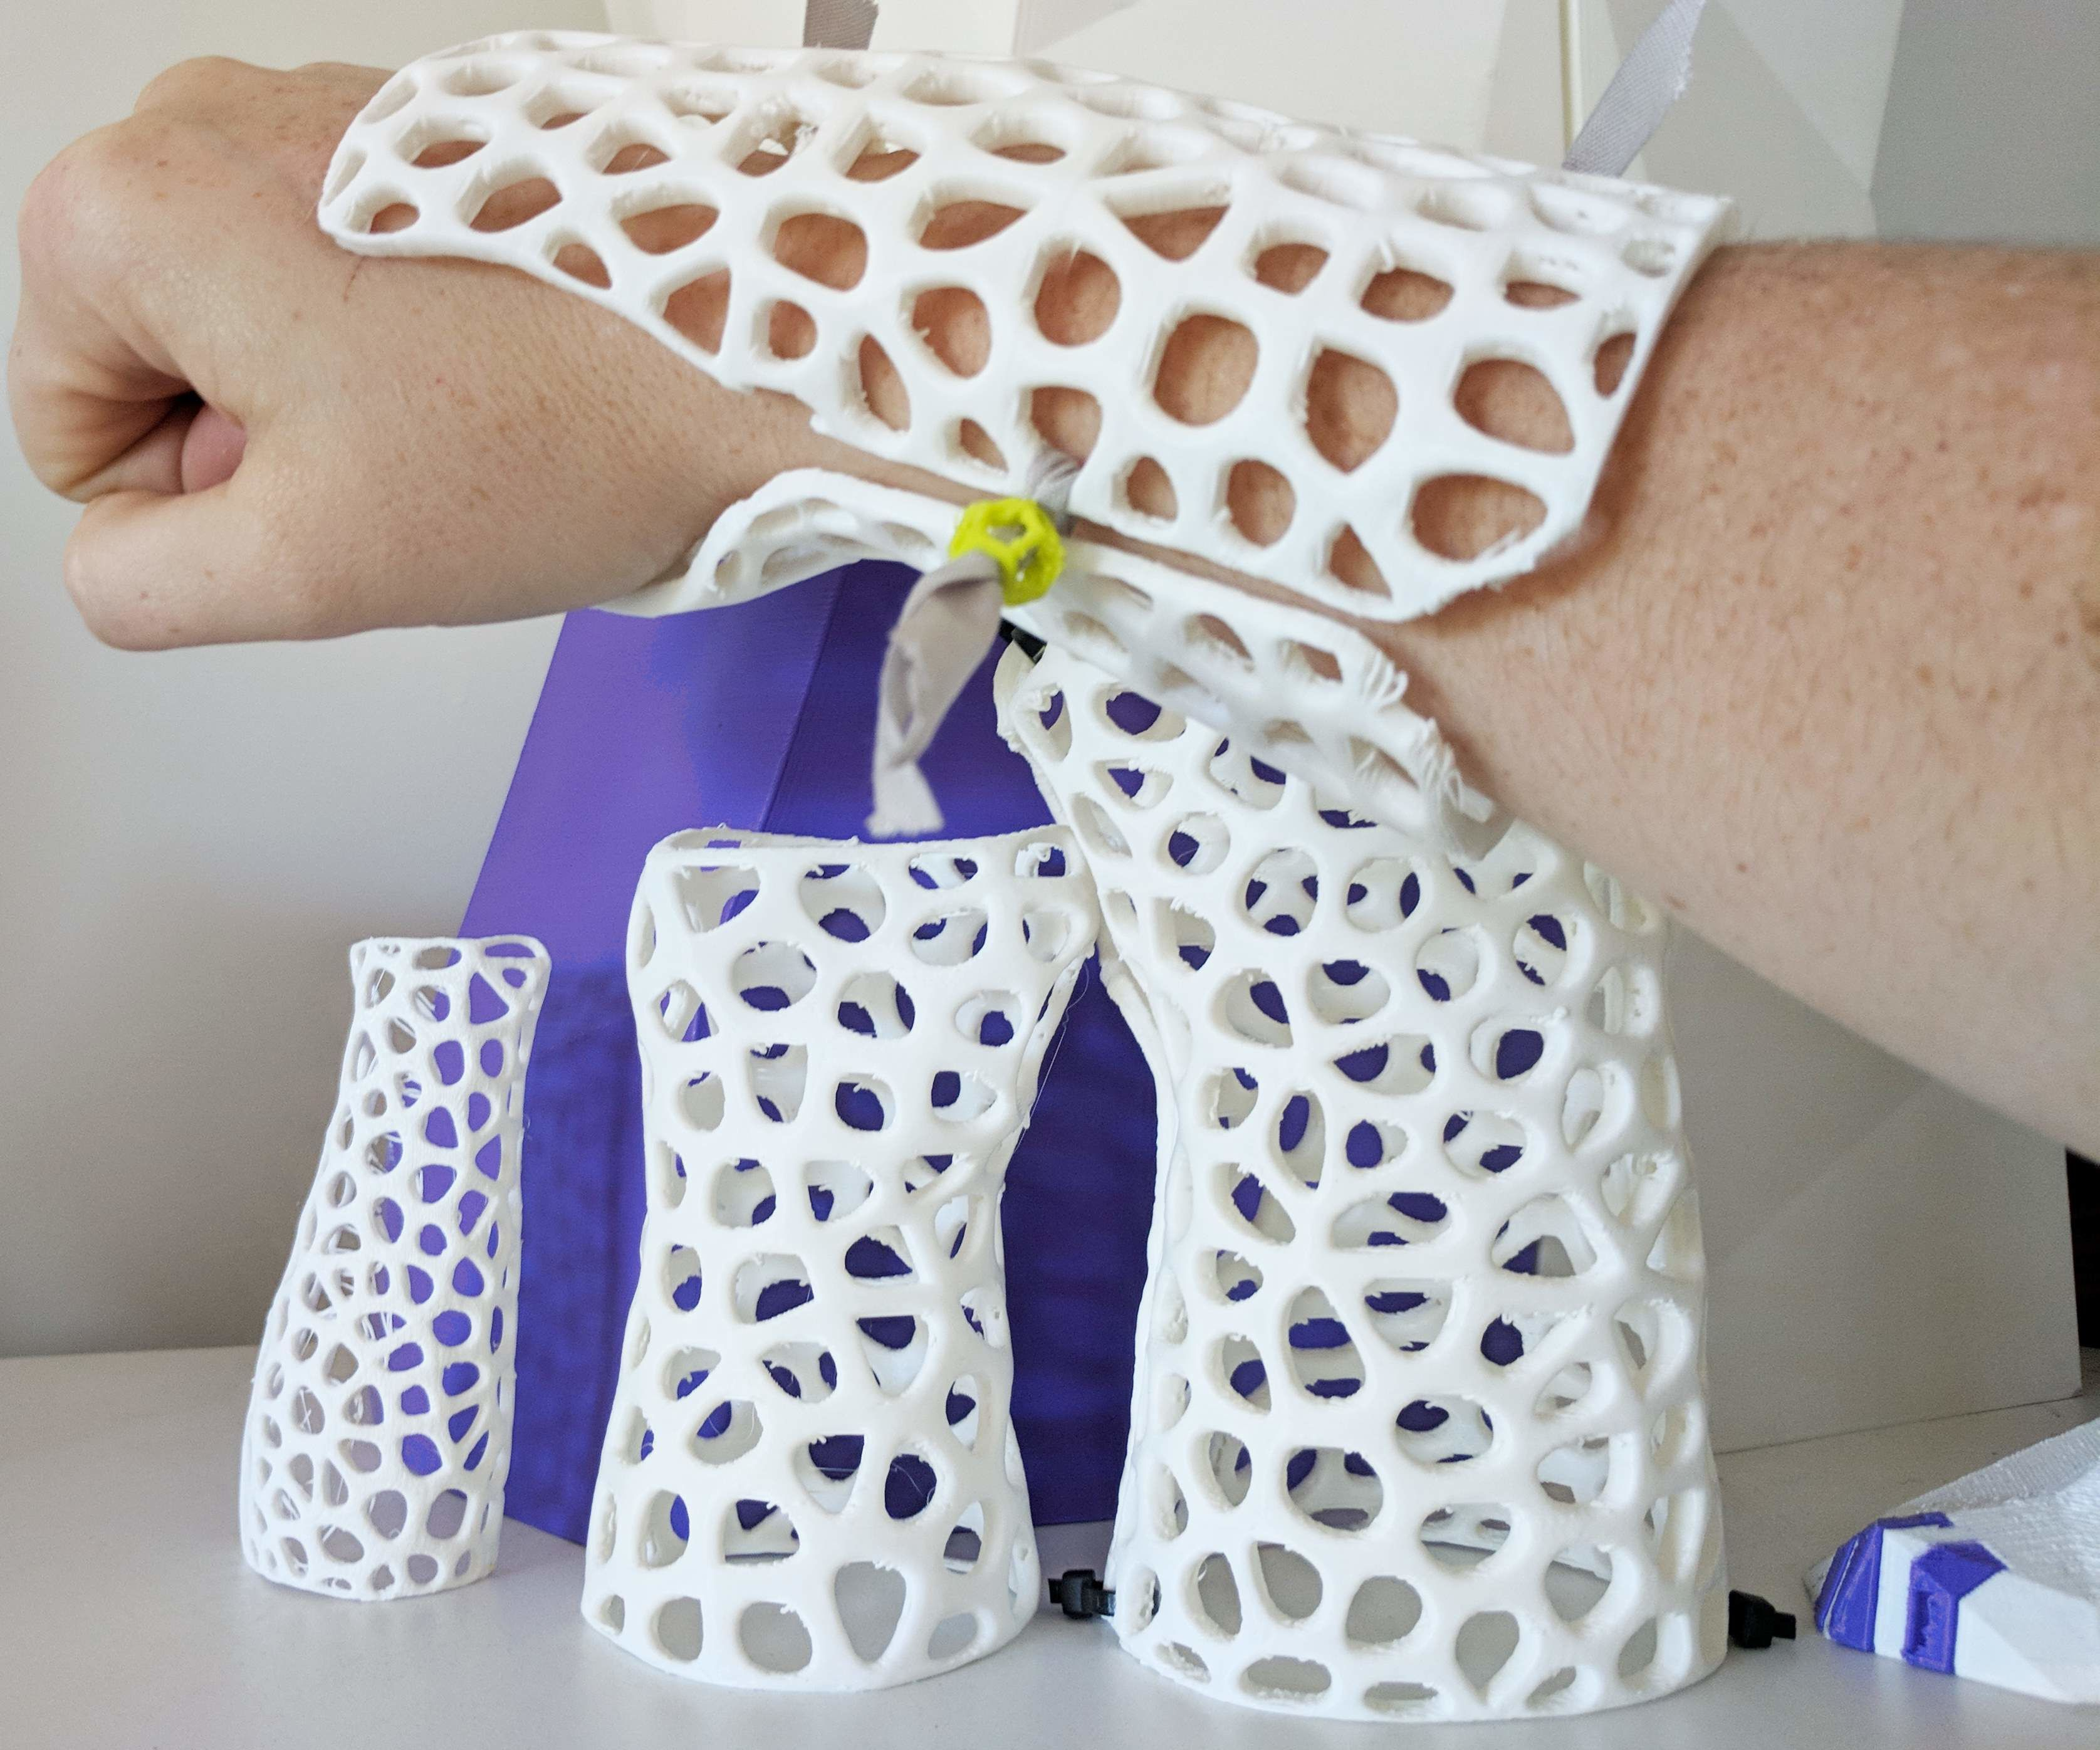 How to Design Custom, 3D Printable Braces for Arm Injury: 8 Steps